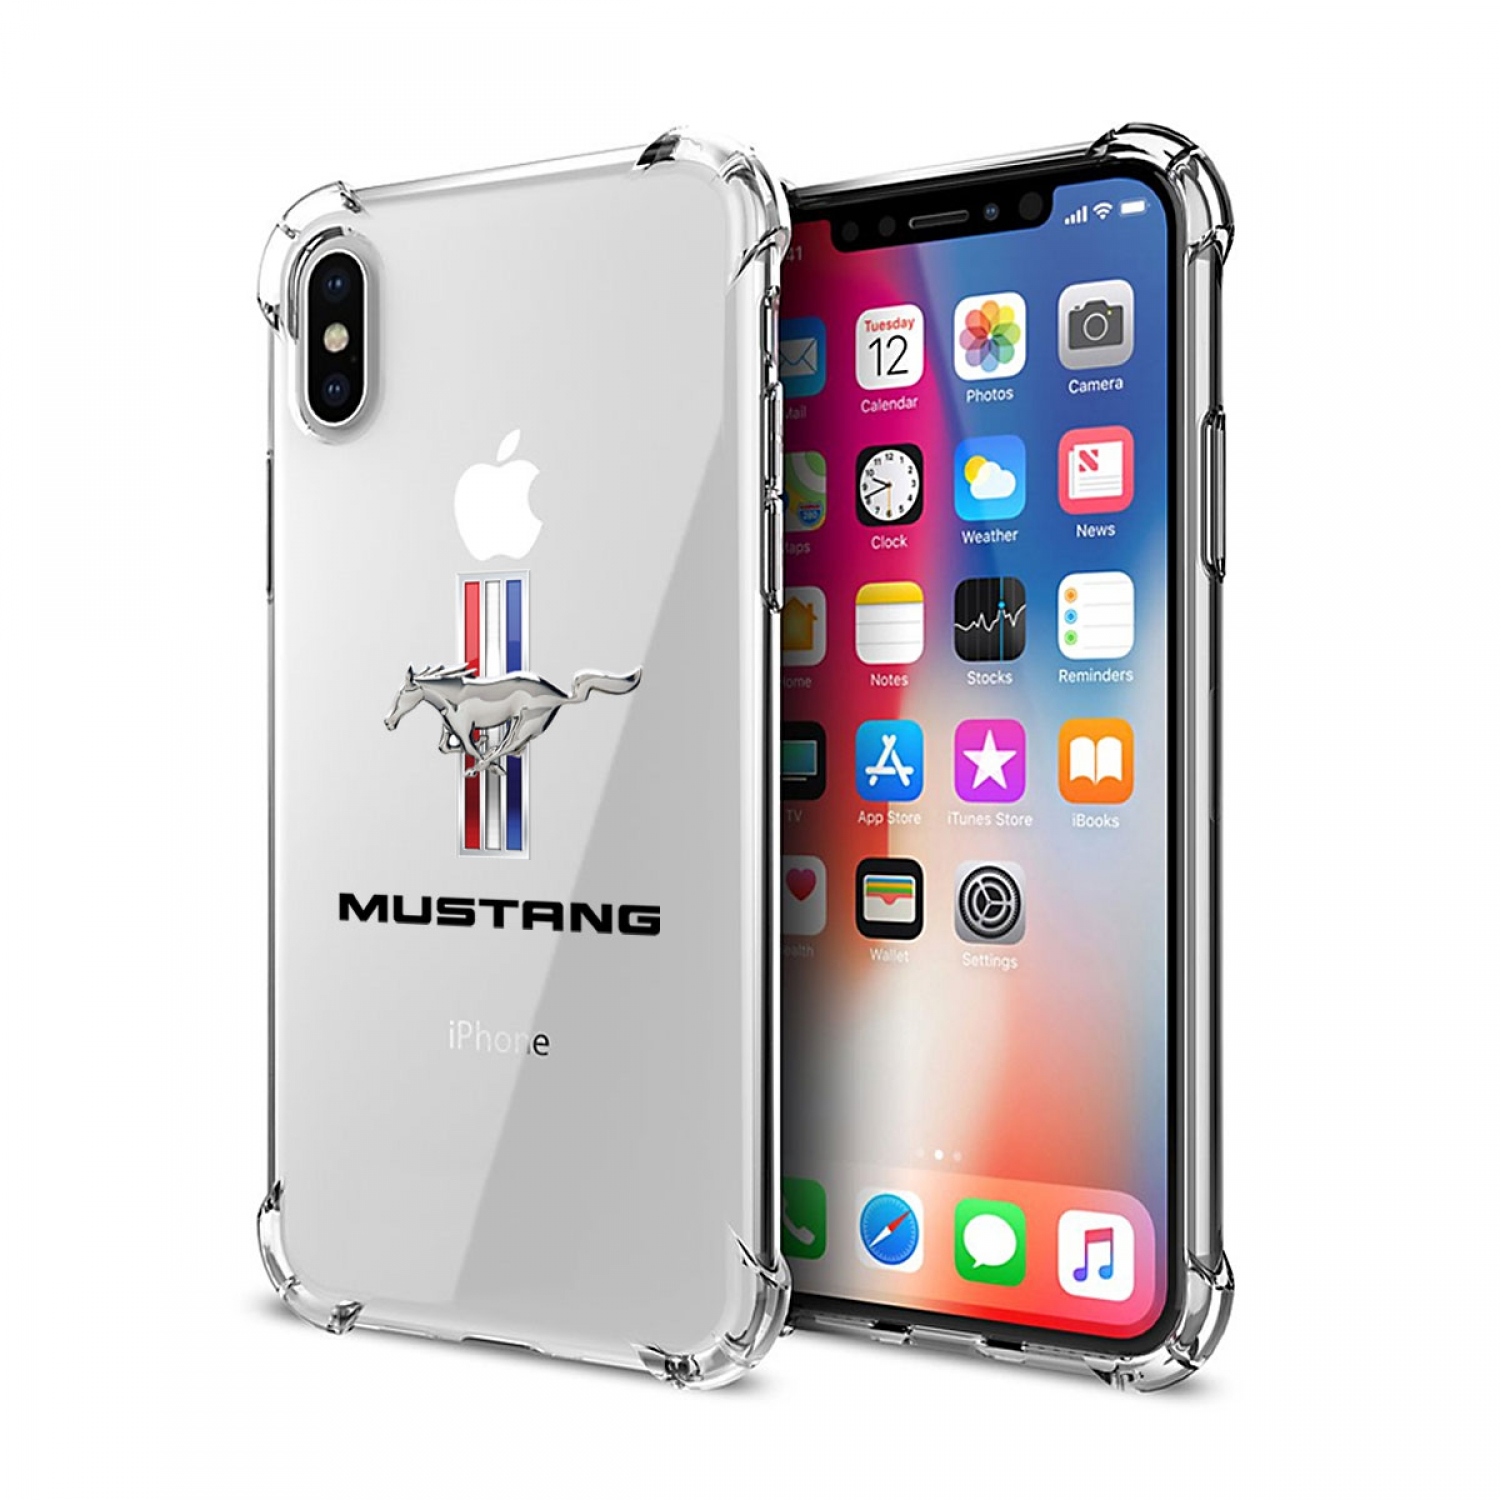 Ford Mustang Tri-Bar iPhone X Clear TPU Shockproof Cell Phone Case